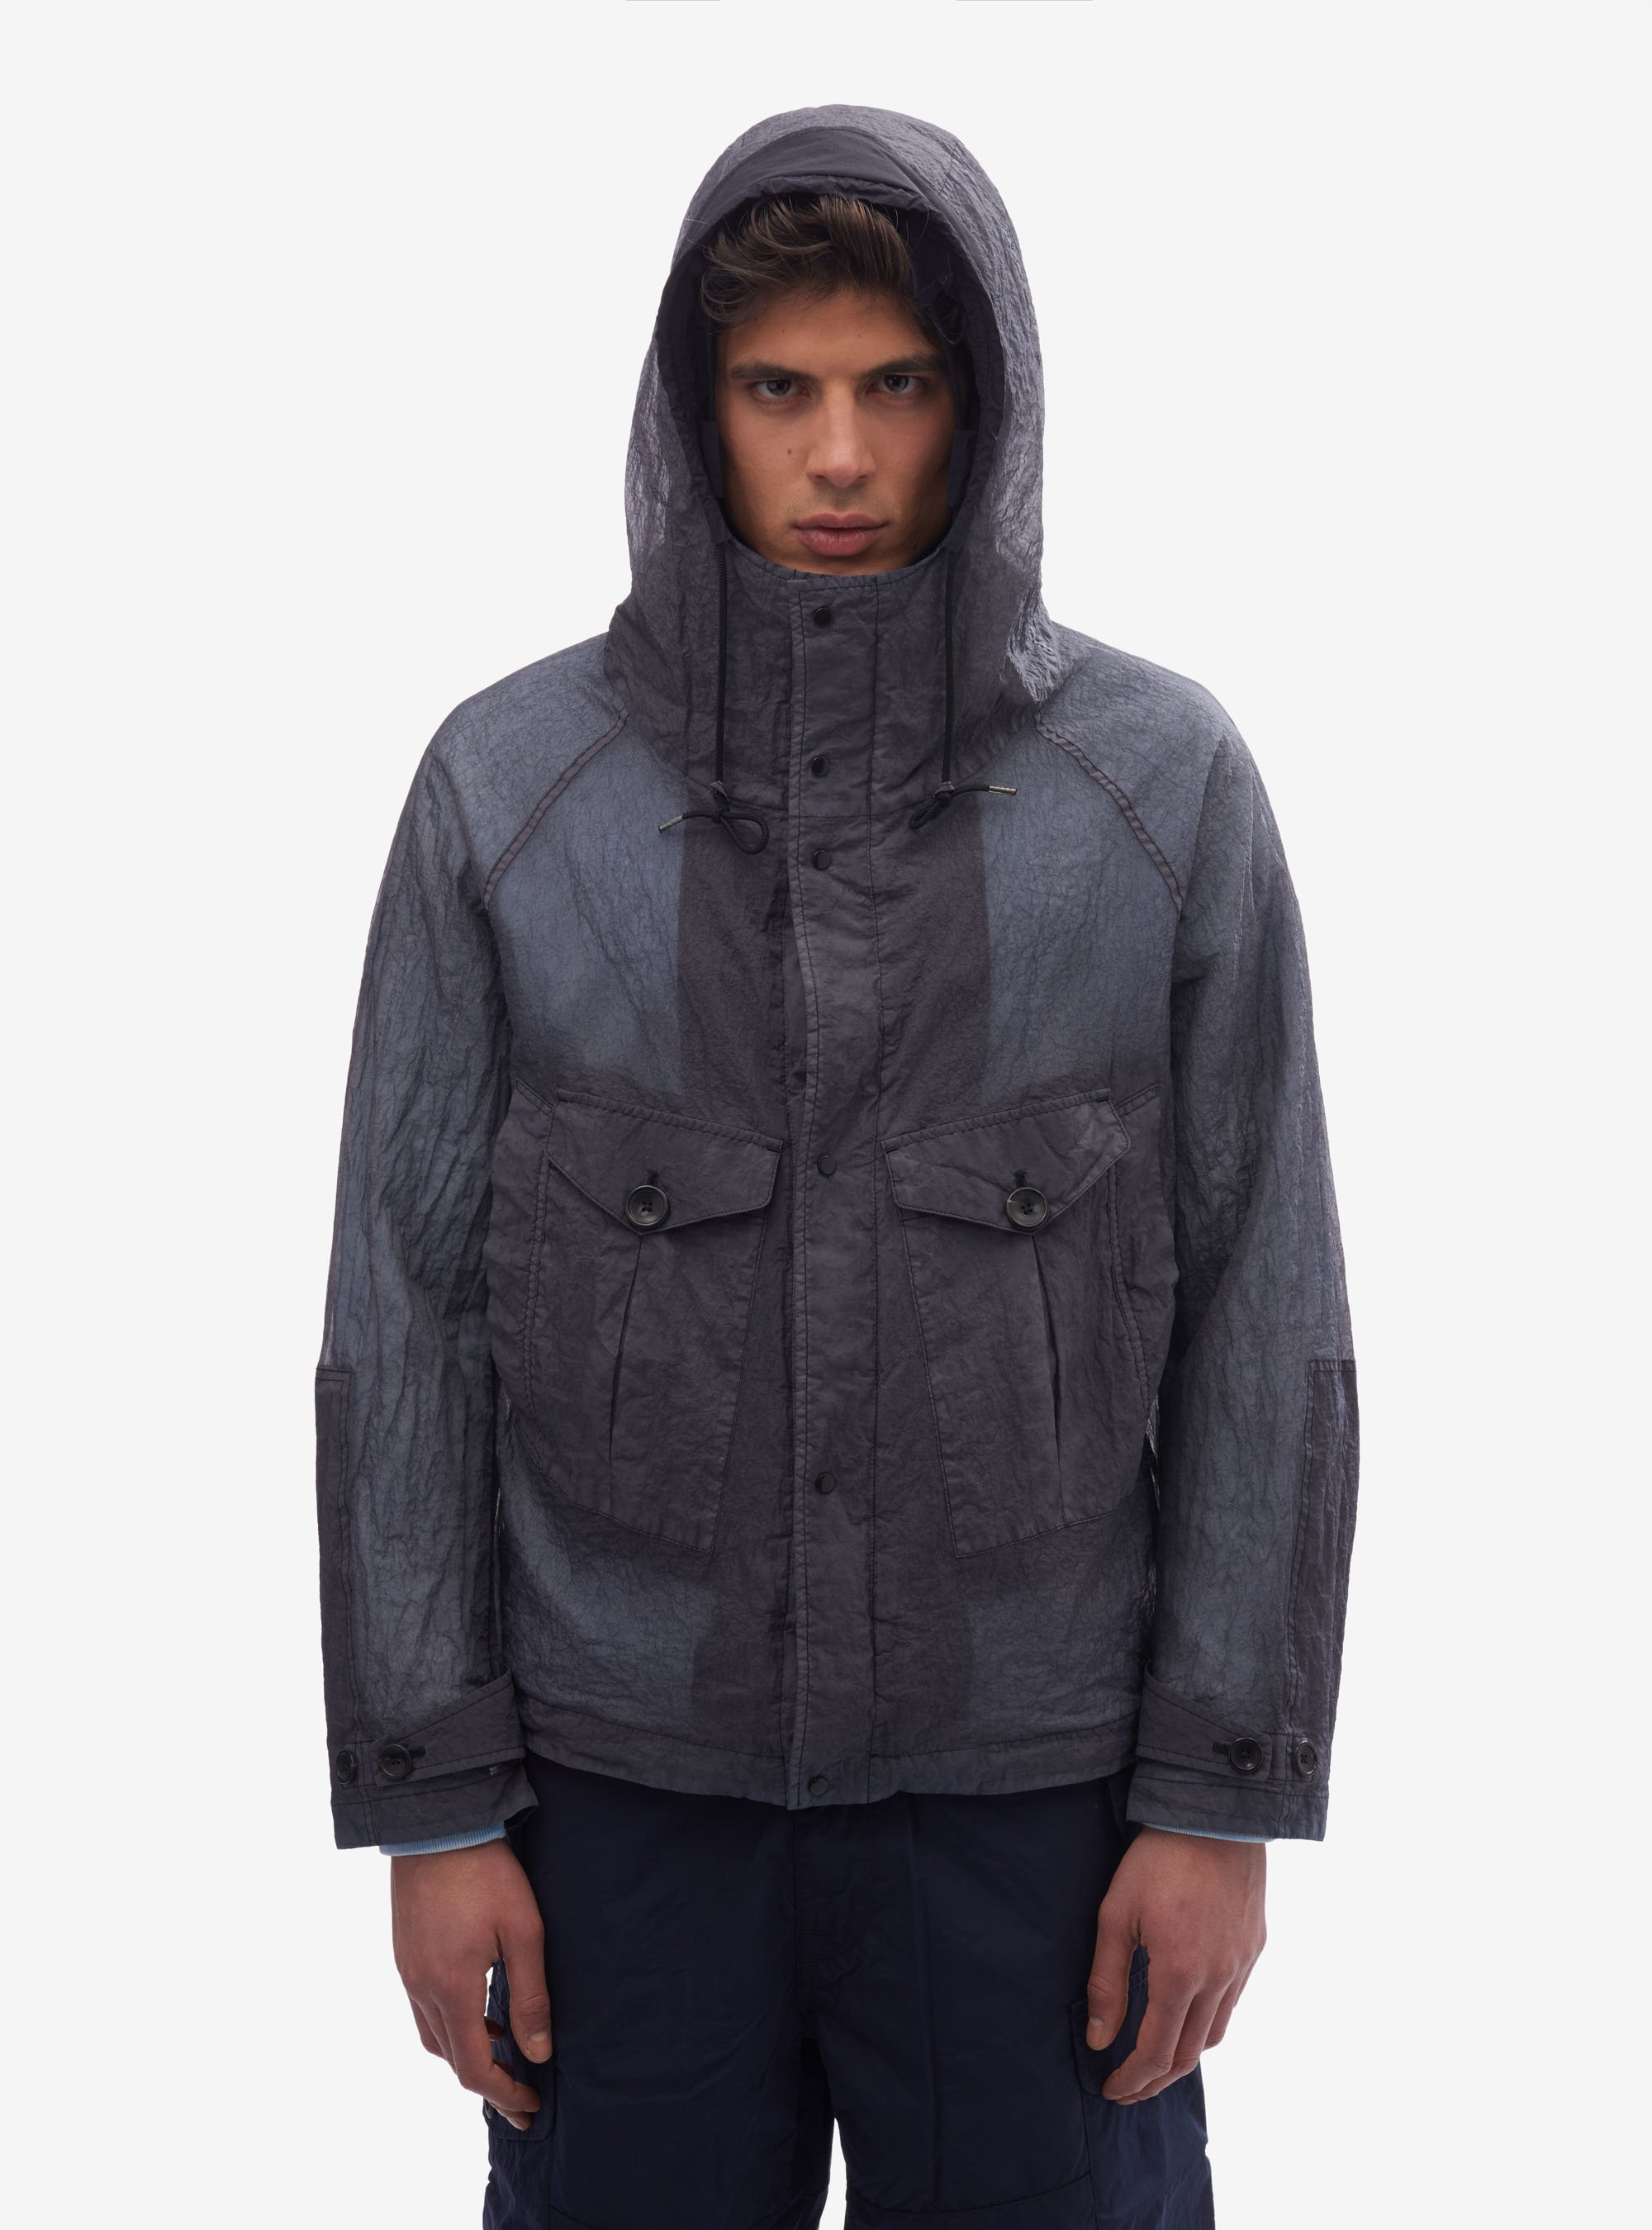 TEN C - TEMPEST ANORAK - SUMMER EDIT - Black - TEN C